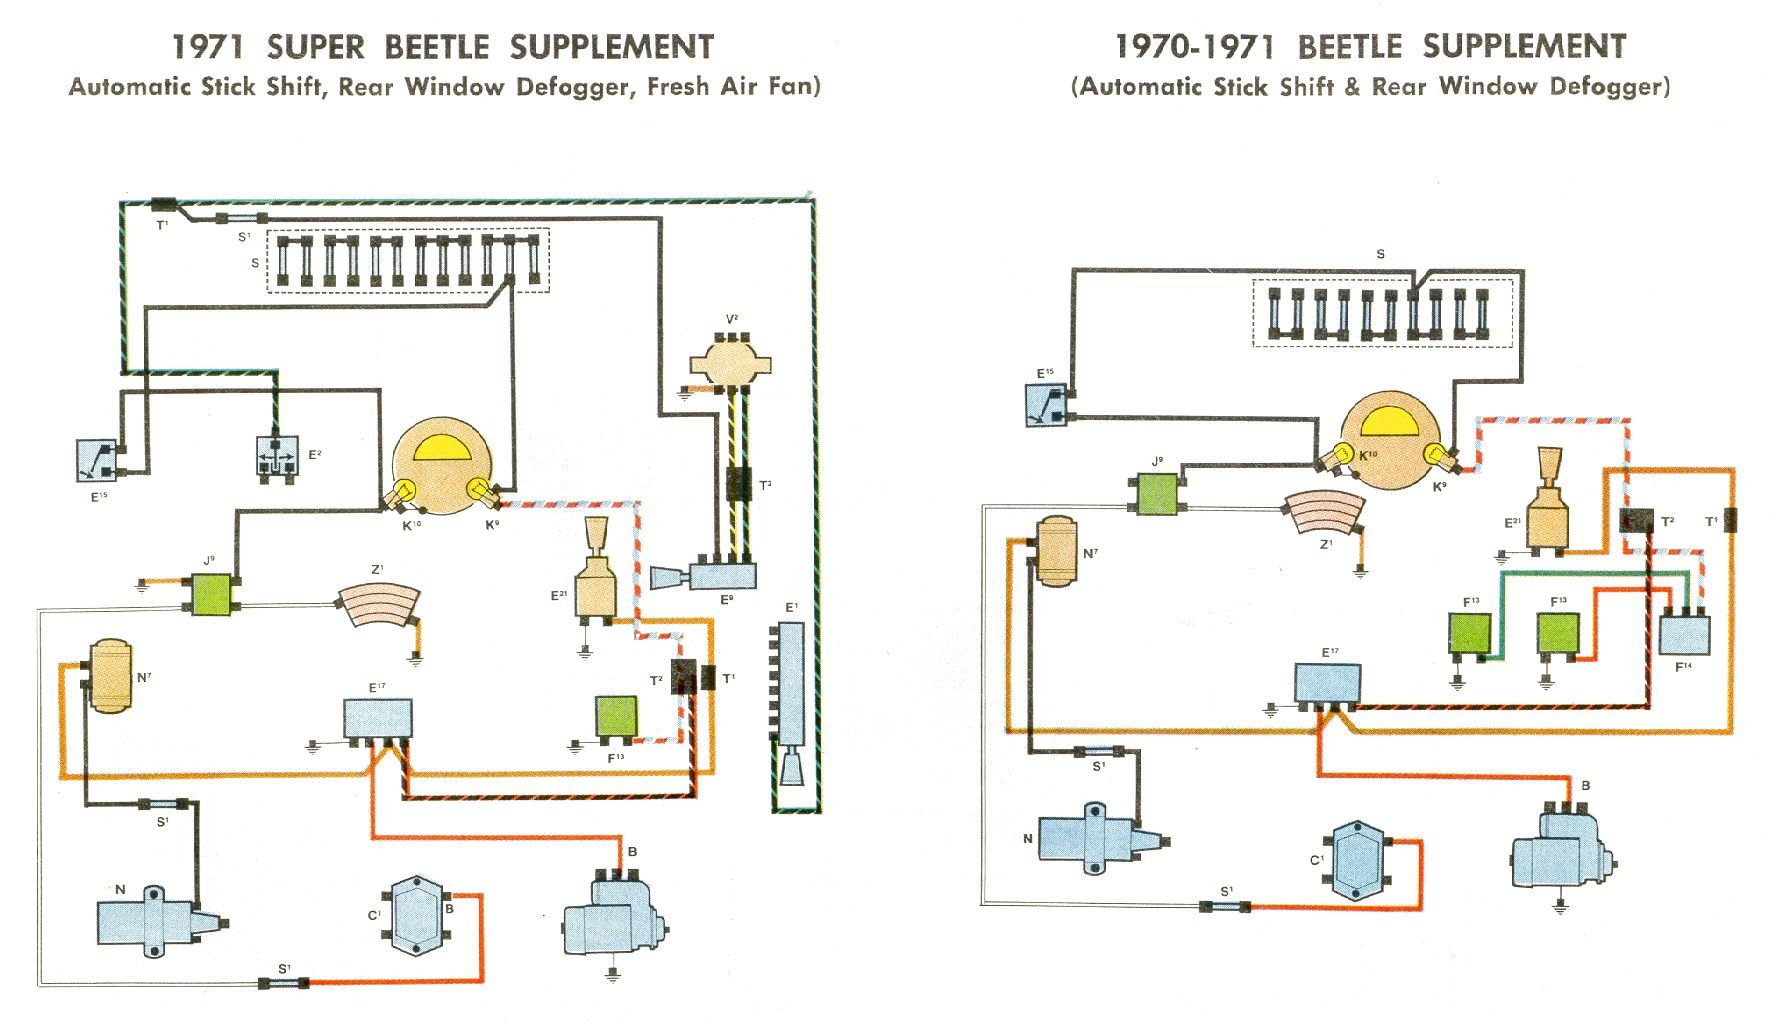 bug_7071_supplement beetle wiring diagram 71 super beetle wiring diagram \u2022 free wiring 1973 super beetle wiring harness at nearapp.co